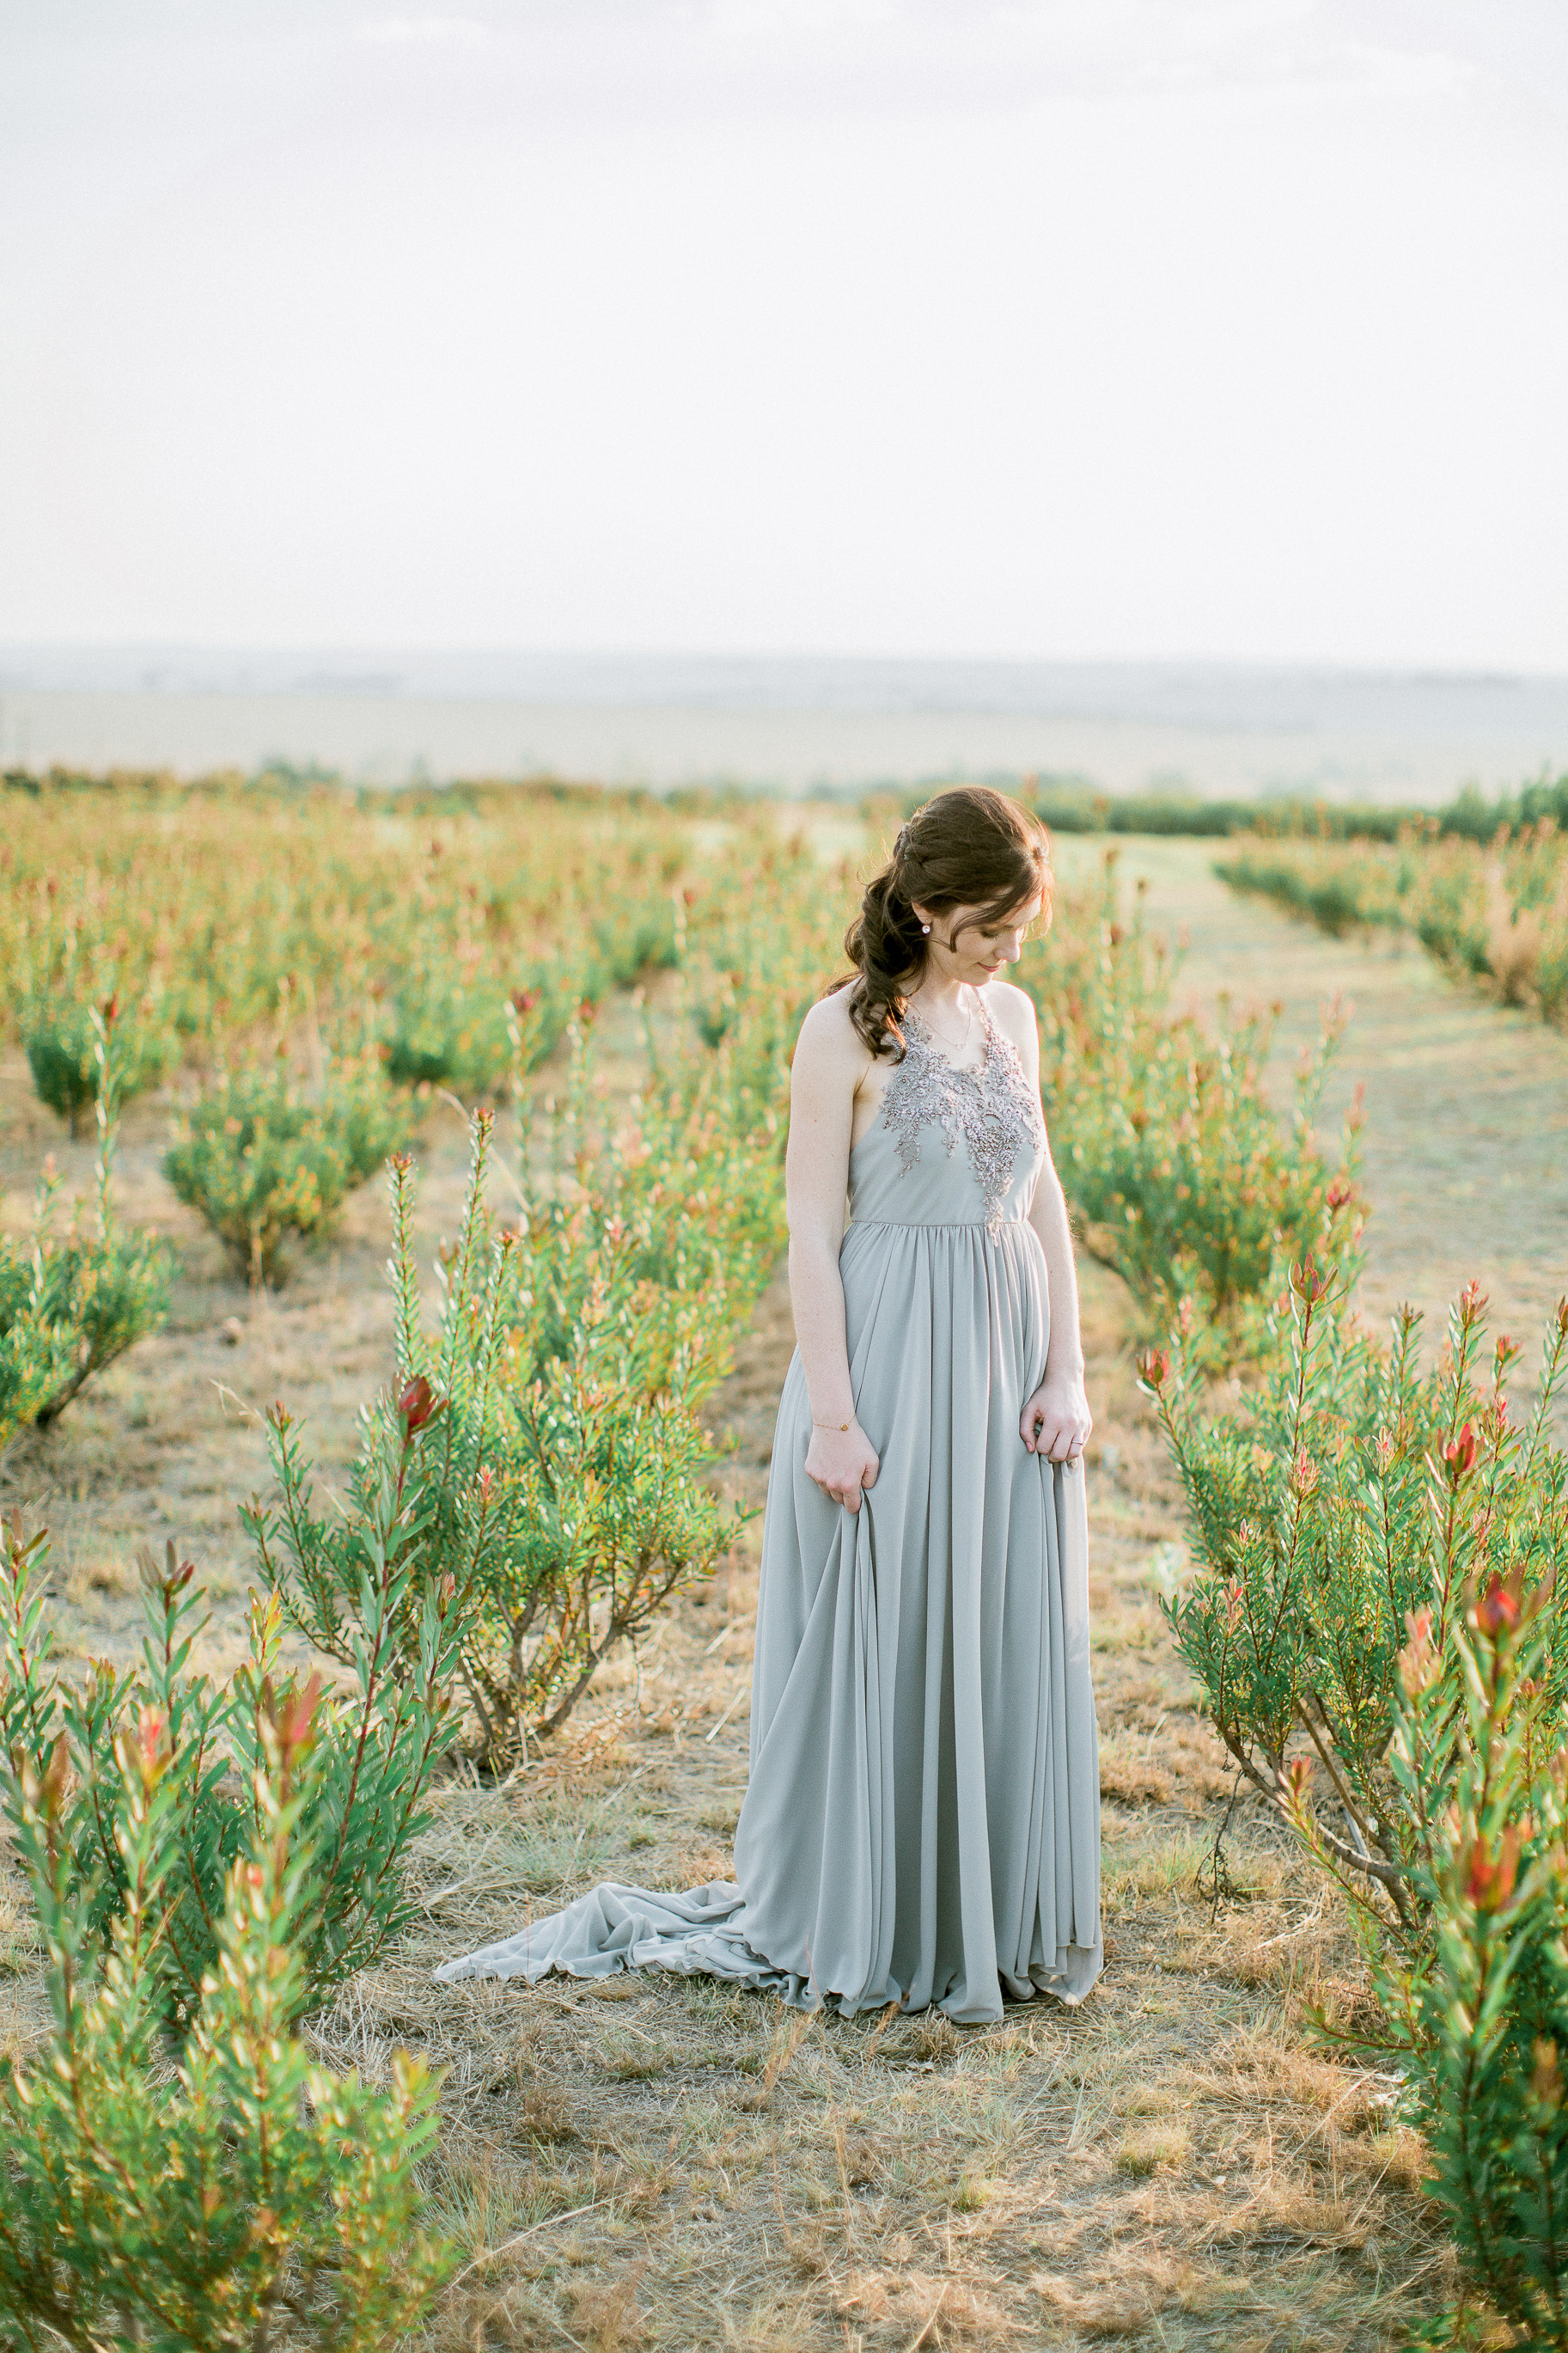 South africa wedding photographer clareece smit photography65.jpg